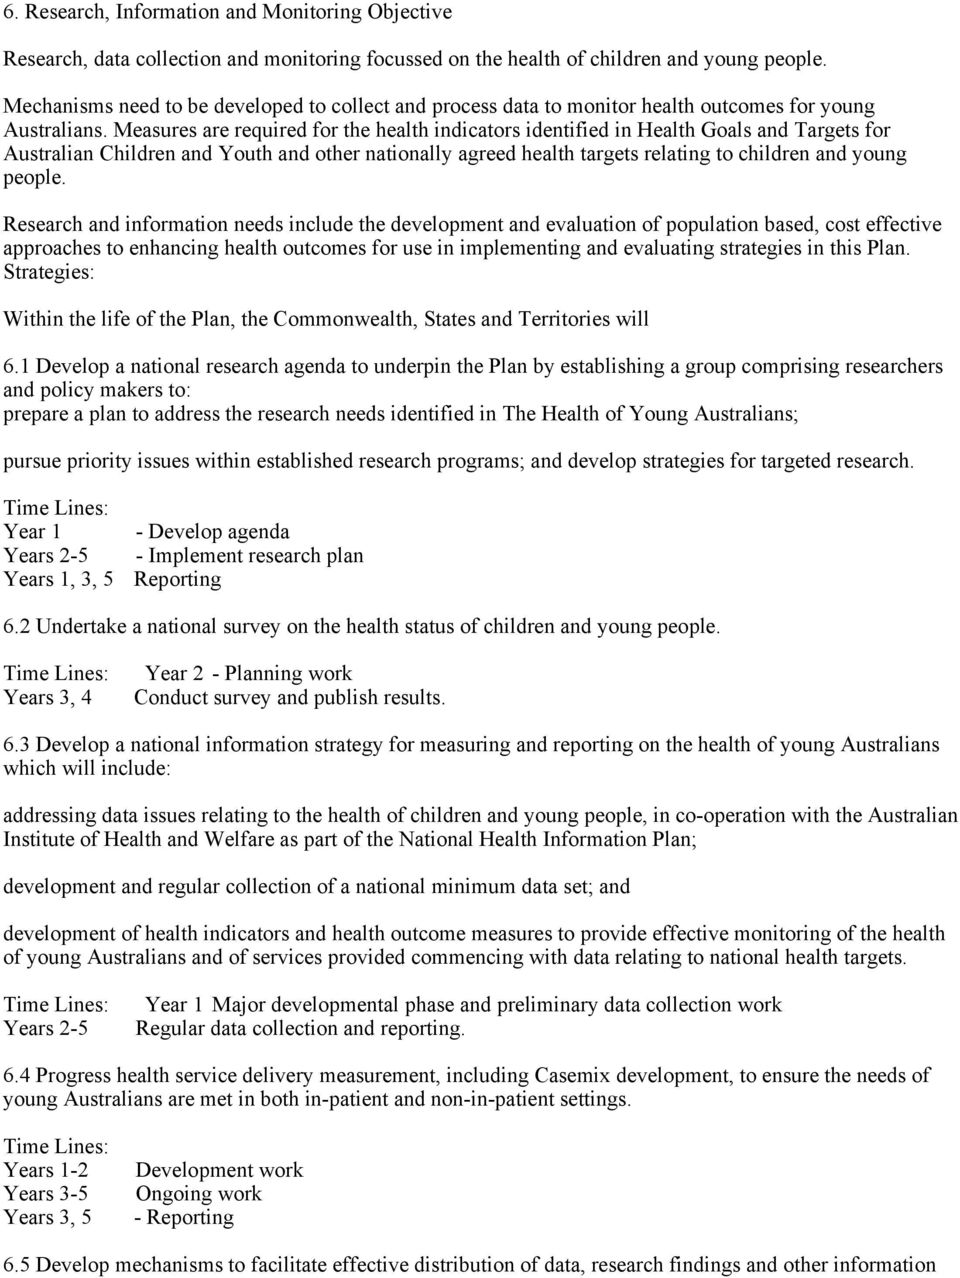 Measures are required for the health indicators identified in Health Goals and Targets for Australian Children and Youth and other nationally agreed health targets relating to children and young